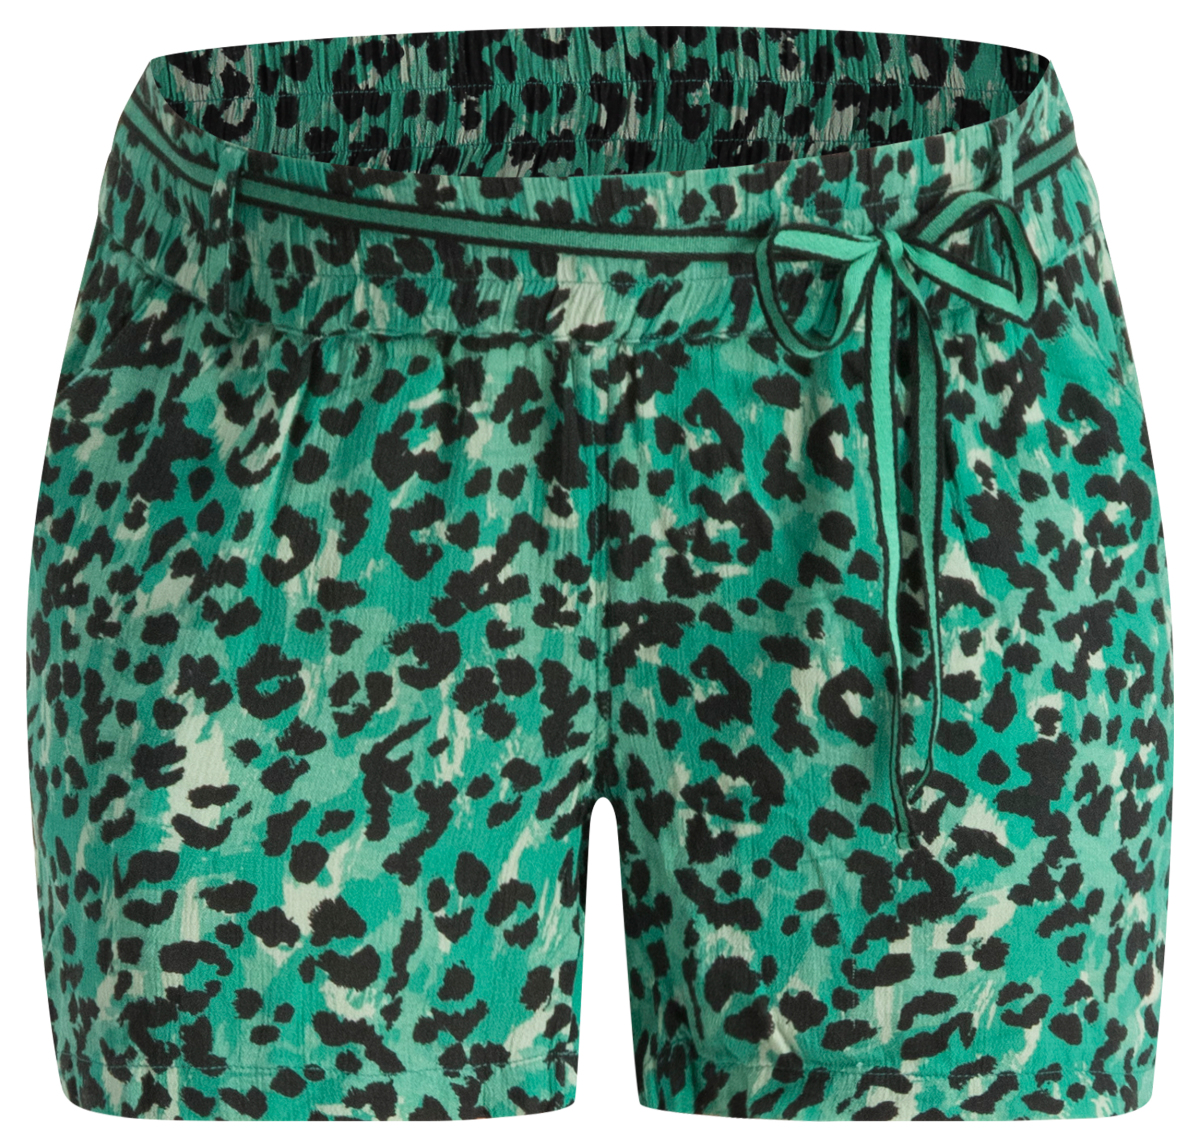 Shorts Sea Leopard